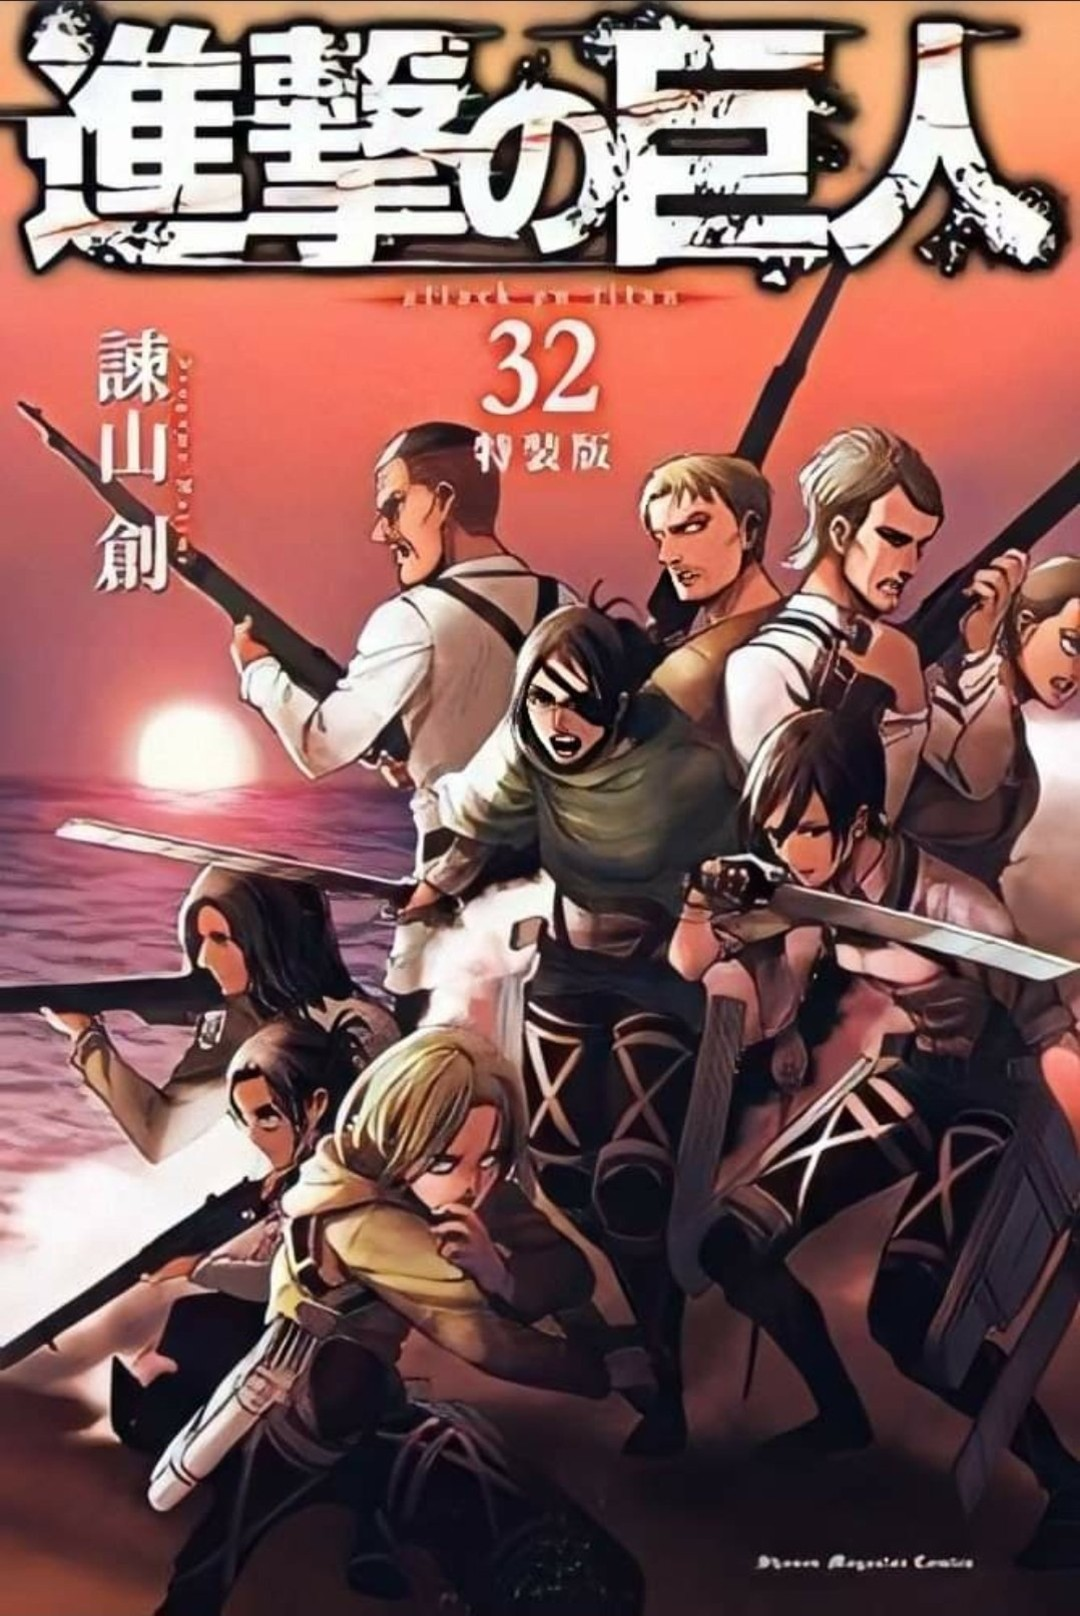 Attack on Titan Shingeki no Kyojin Manga Volumen 32